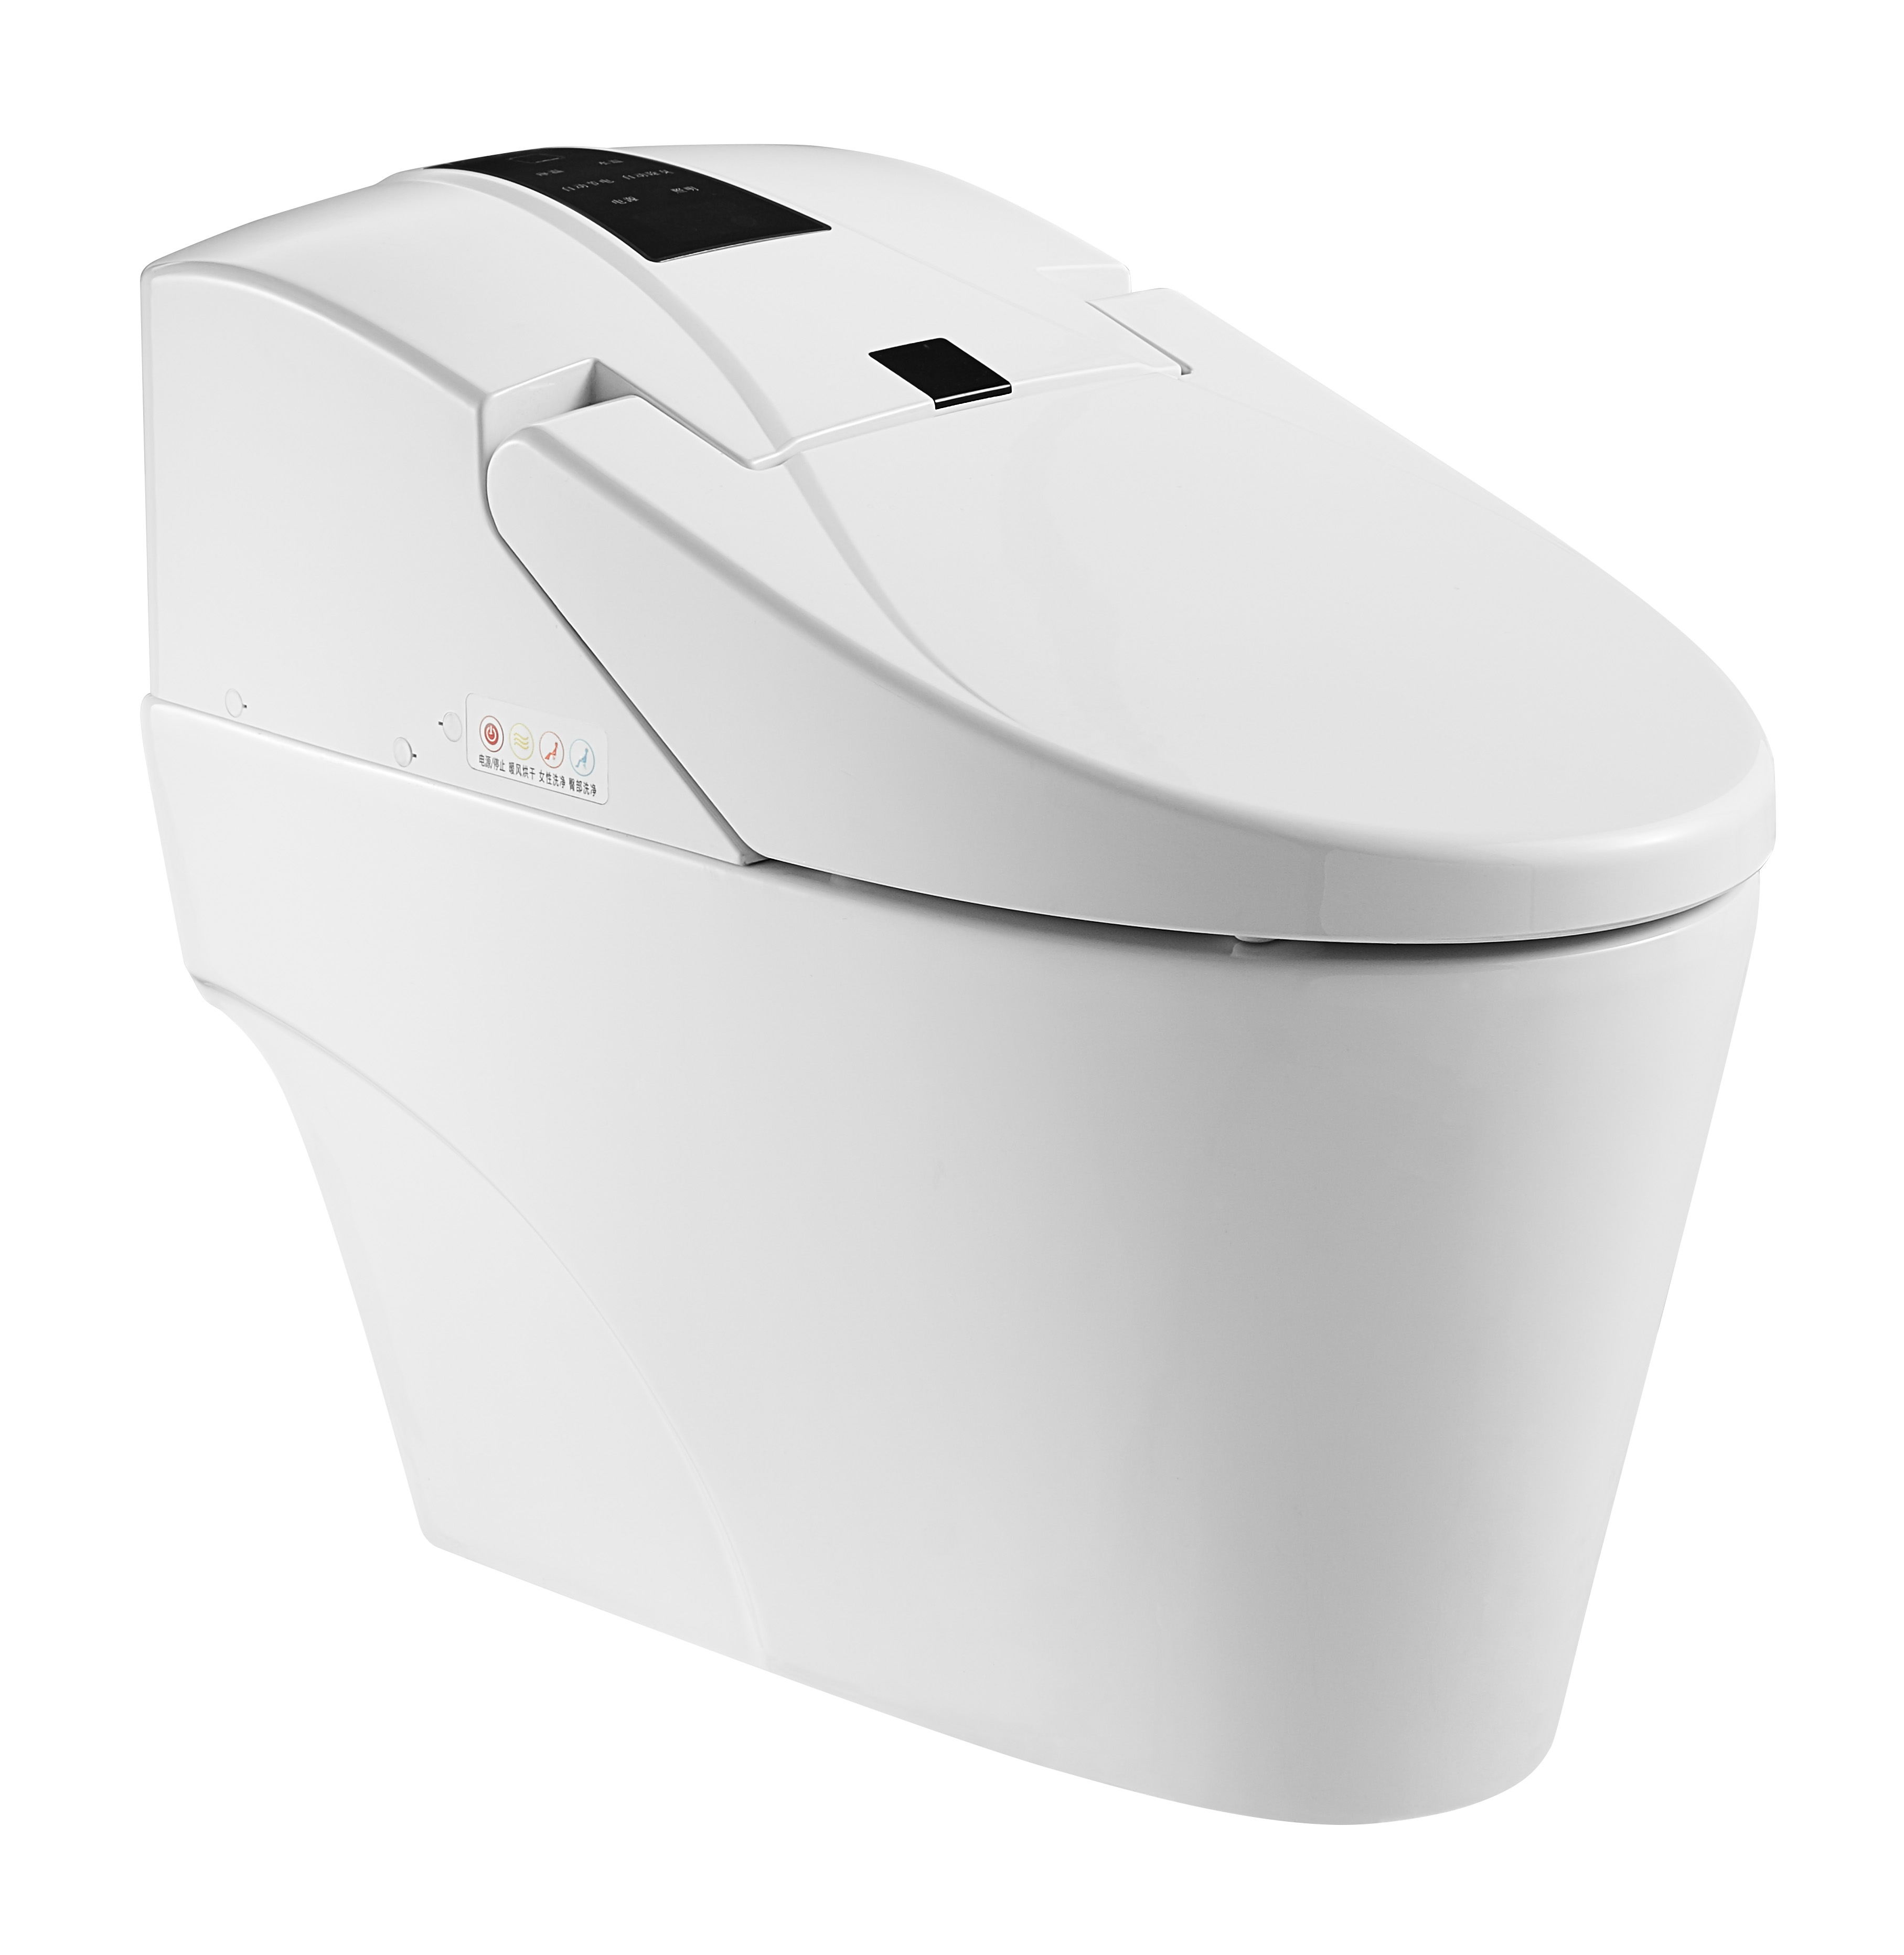 Superb Hygienic Warm Water Cleaning Electronic Wc Bidet Toilet Zjs 05 Buy Water Closet Toto Toilet Automatic Self Celan Toilet Arab Toilet Wc Product On Pabps2019 Chair Design Images Pabps2019Com